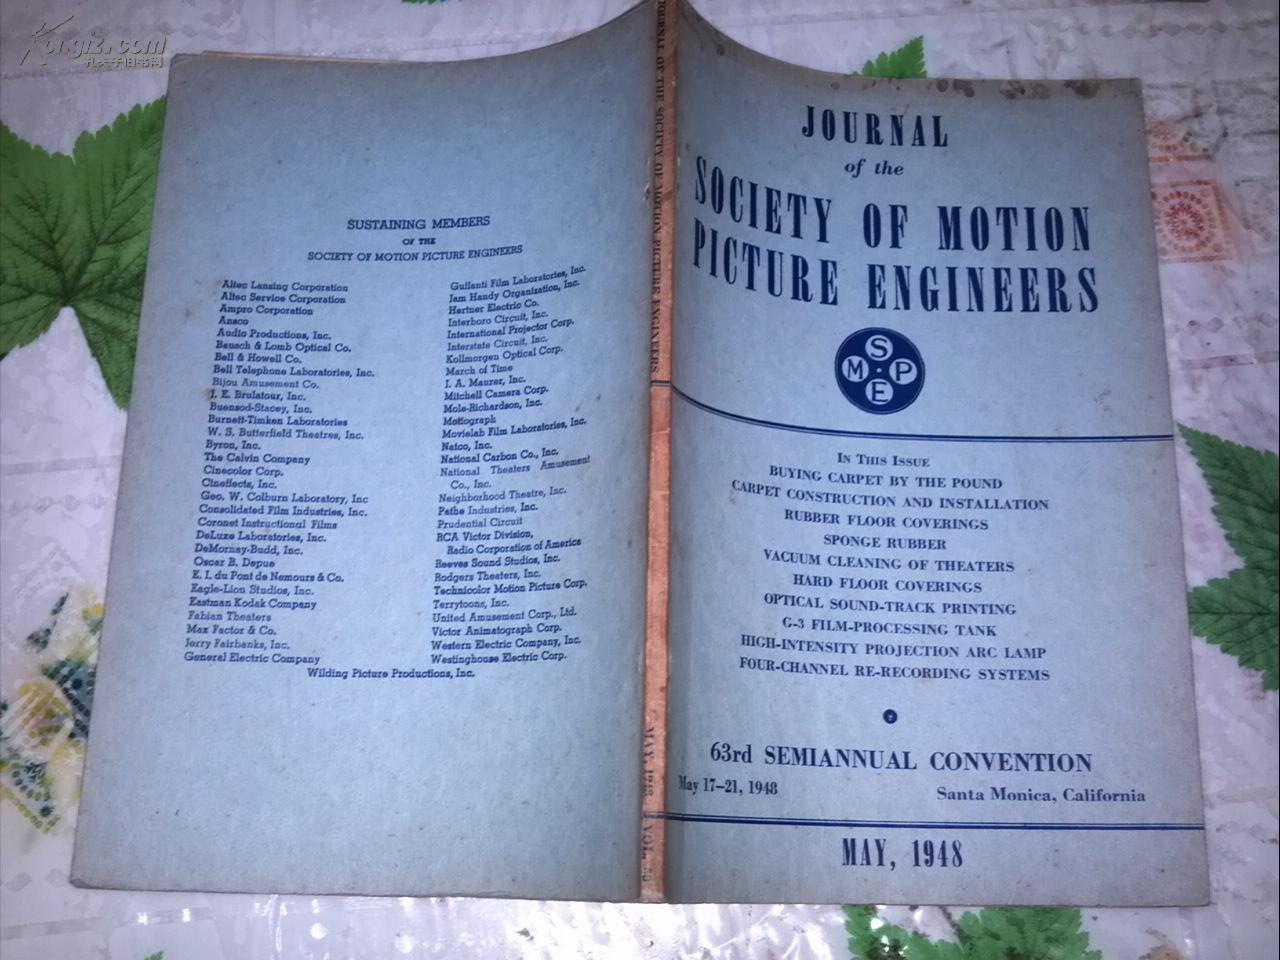 JOURNAL OF THE SOCIETY OF MOTION PICTURE ENGINEERS  MAY, 1948電影工程師協會雜志1948年5月號